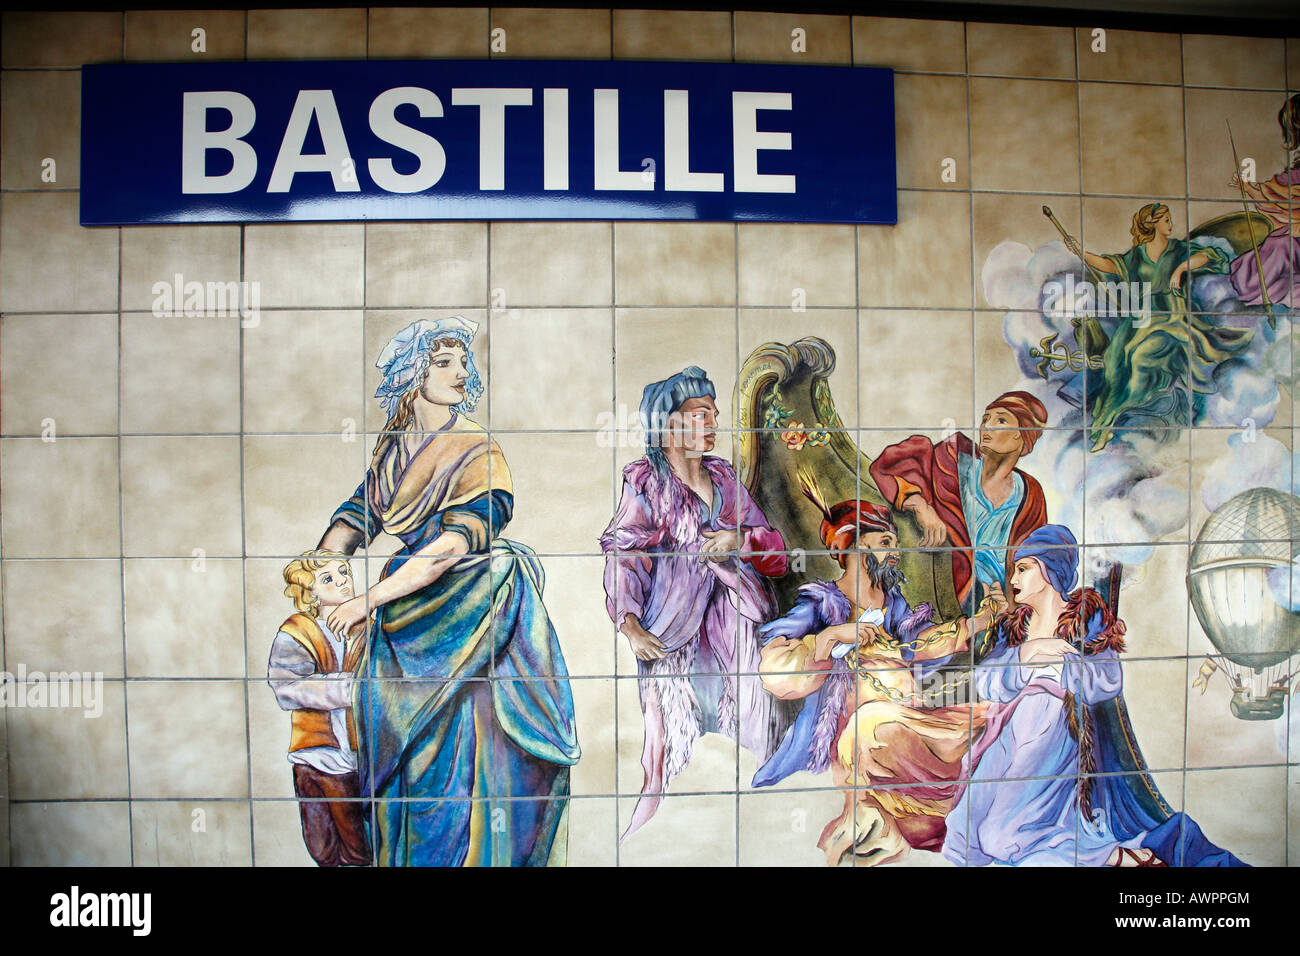 wall mural at bastille station paris metro paris france europe wall mural at bastille station paris metro paris france europe